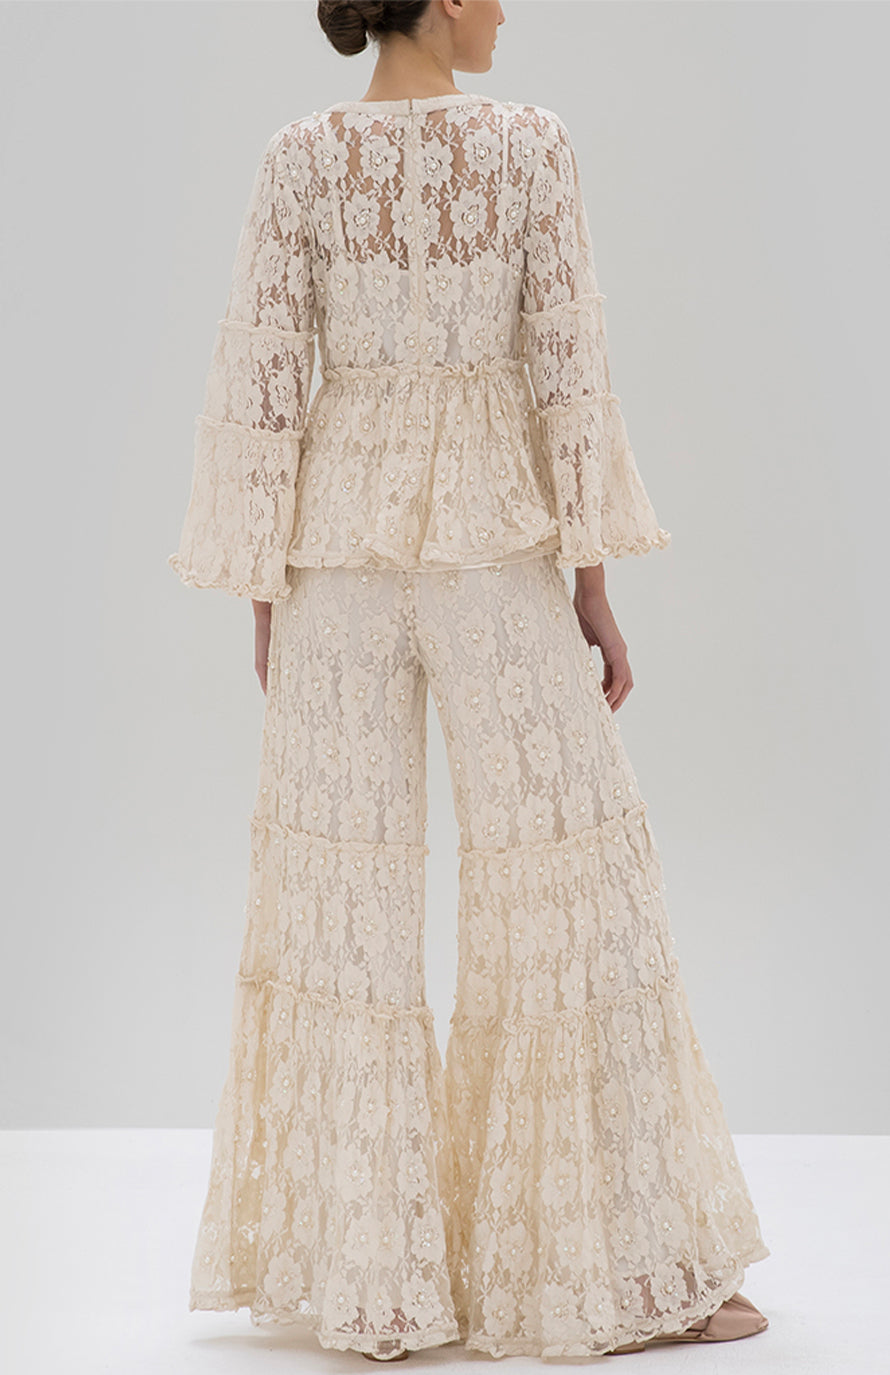 Alexis Tanisa Top and Byrne Pant Beaded Ivory Lace - Rear View